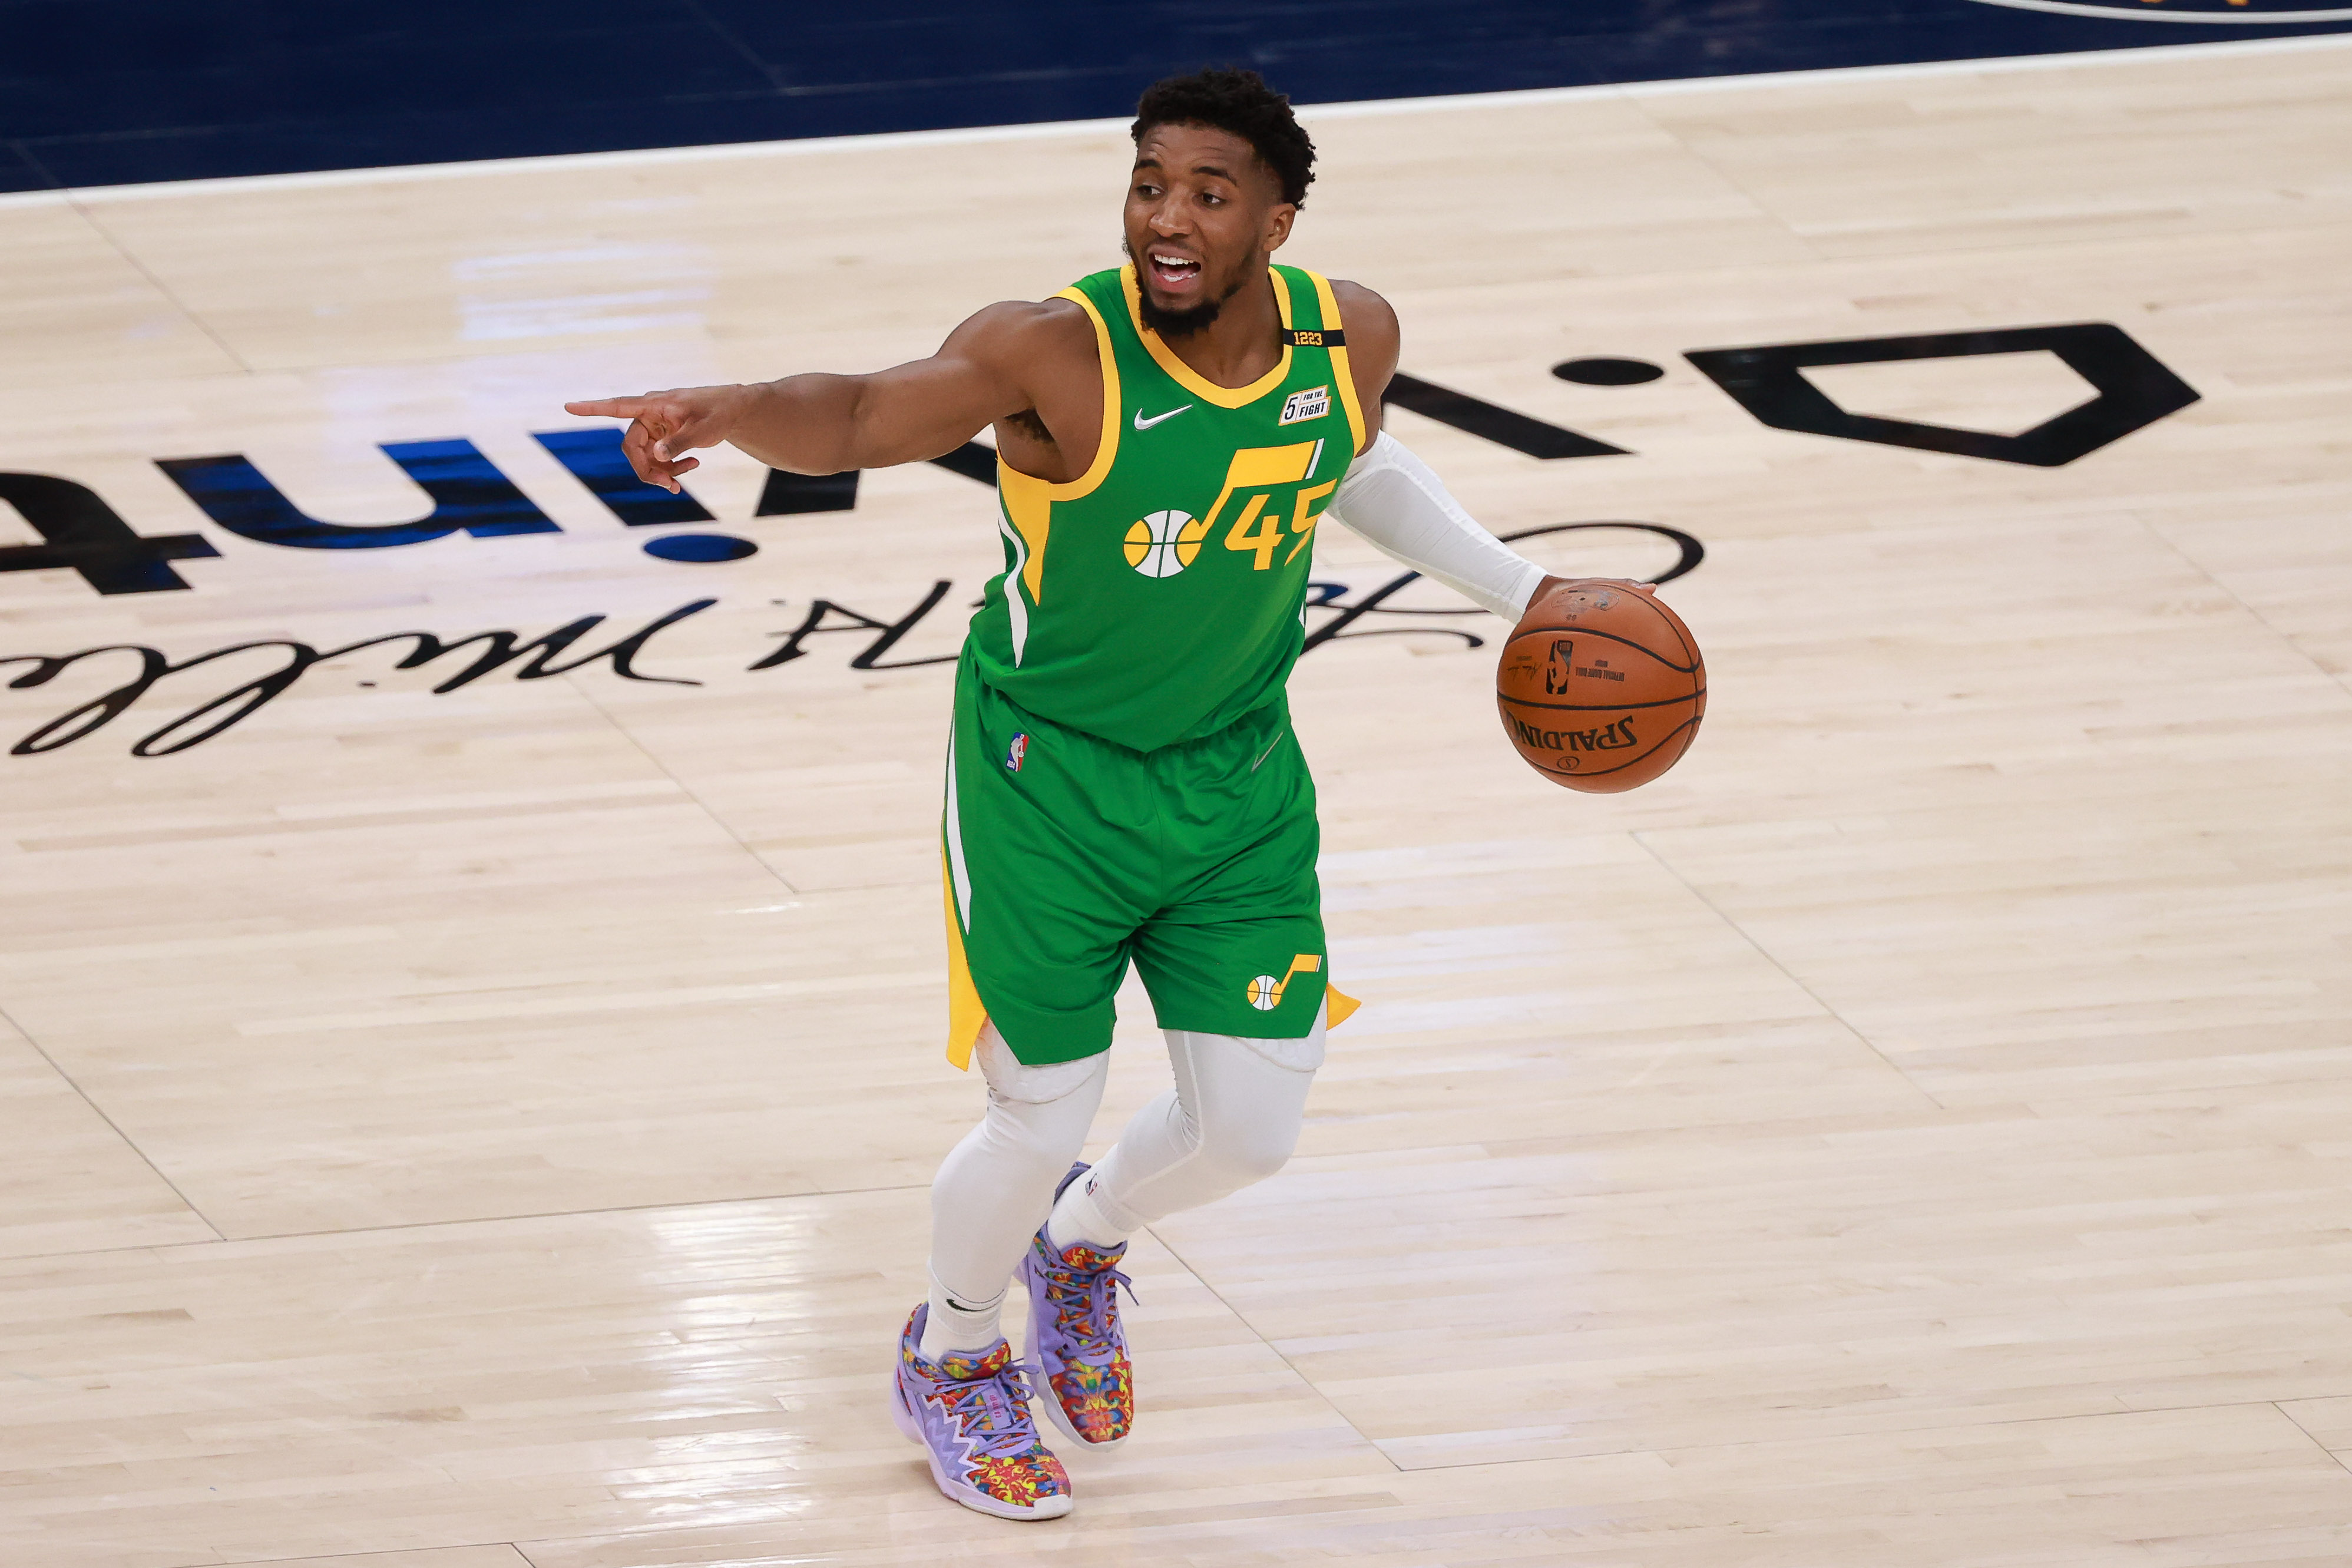 Apr 8, 2021; Salt Lake City, Utah, USA; Utah Jazz guard Donovan Mitchell (45) gestures as he dribbles the ball against the Portland Trail Blazers during the third quarter at Vivint Smart Home Arena.